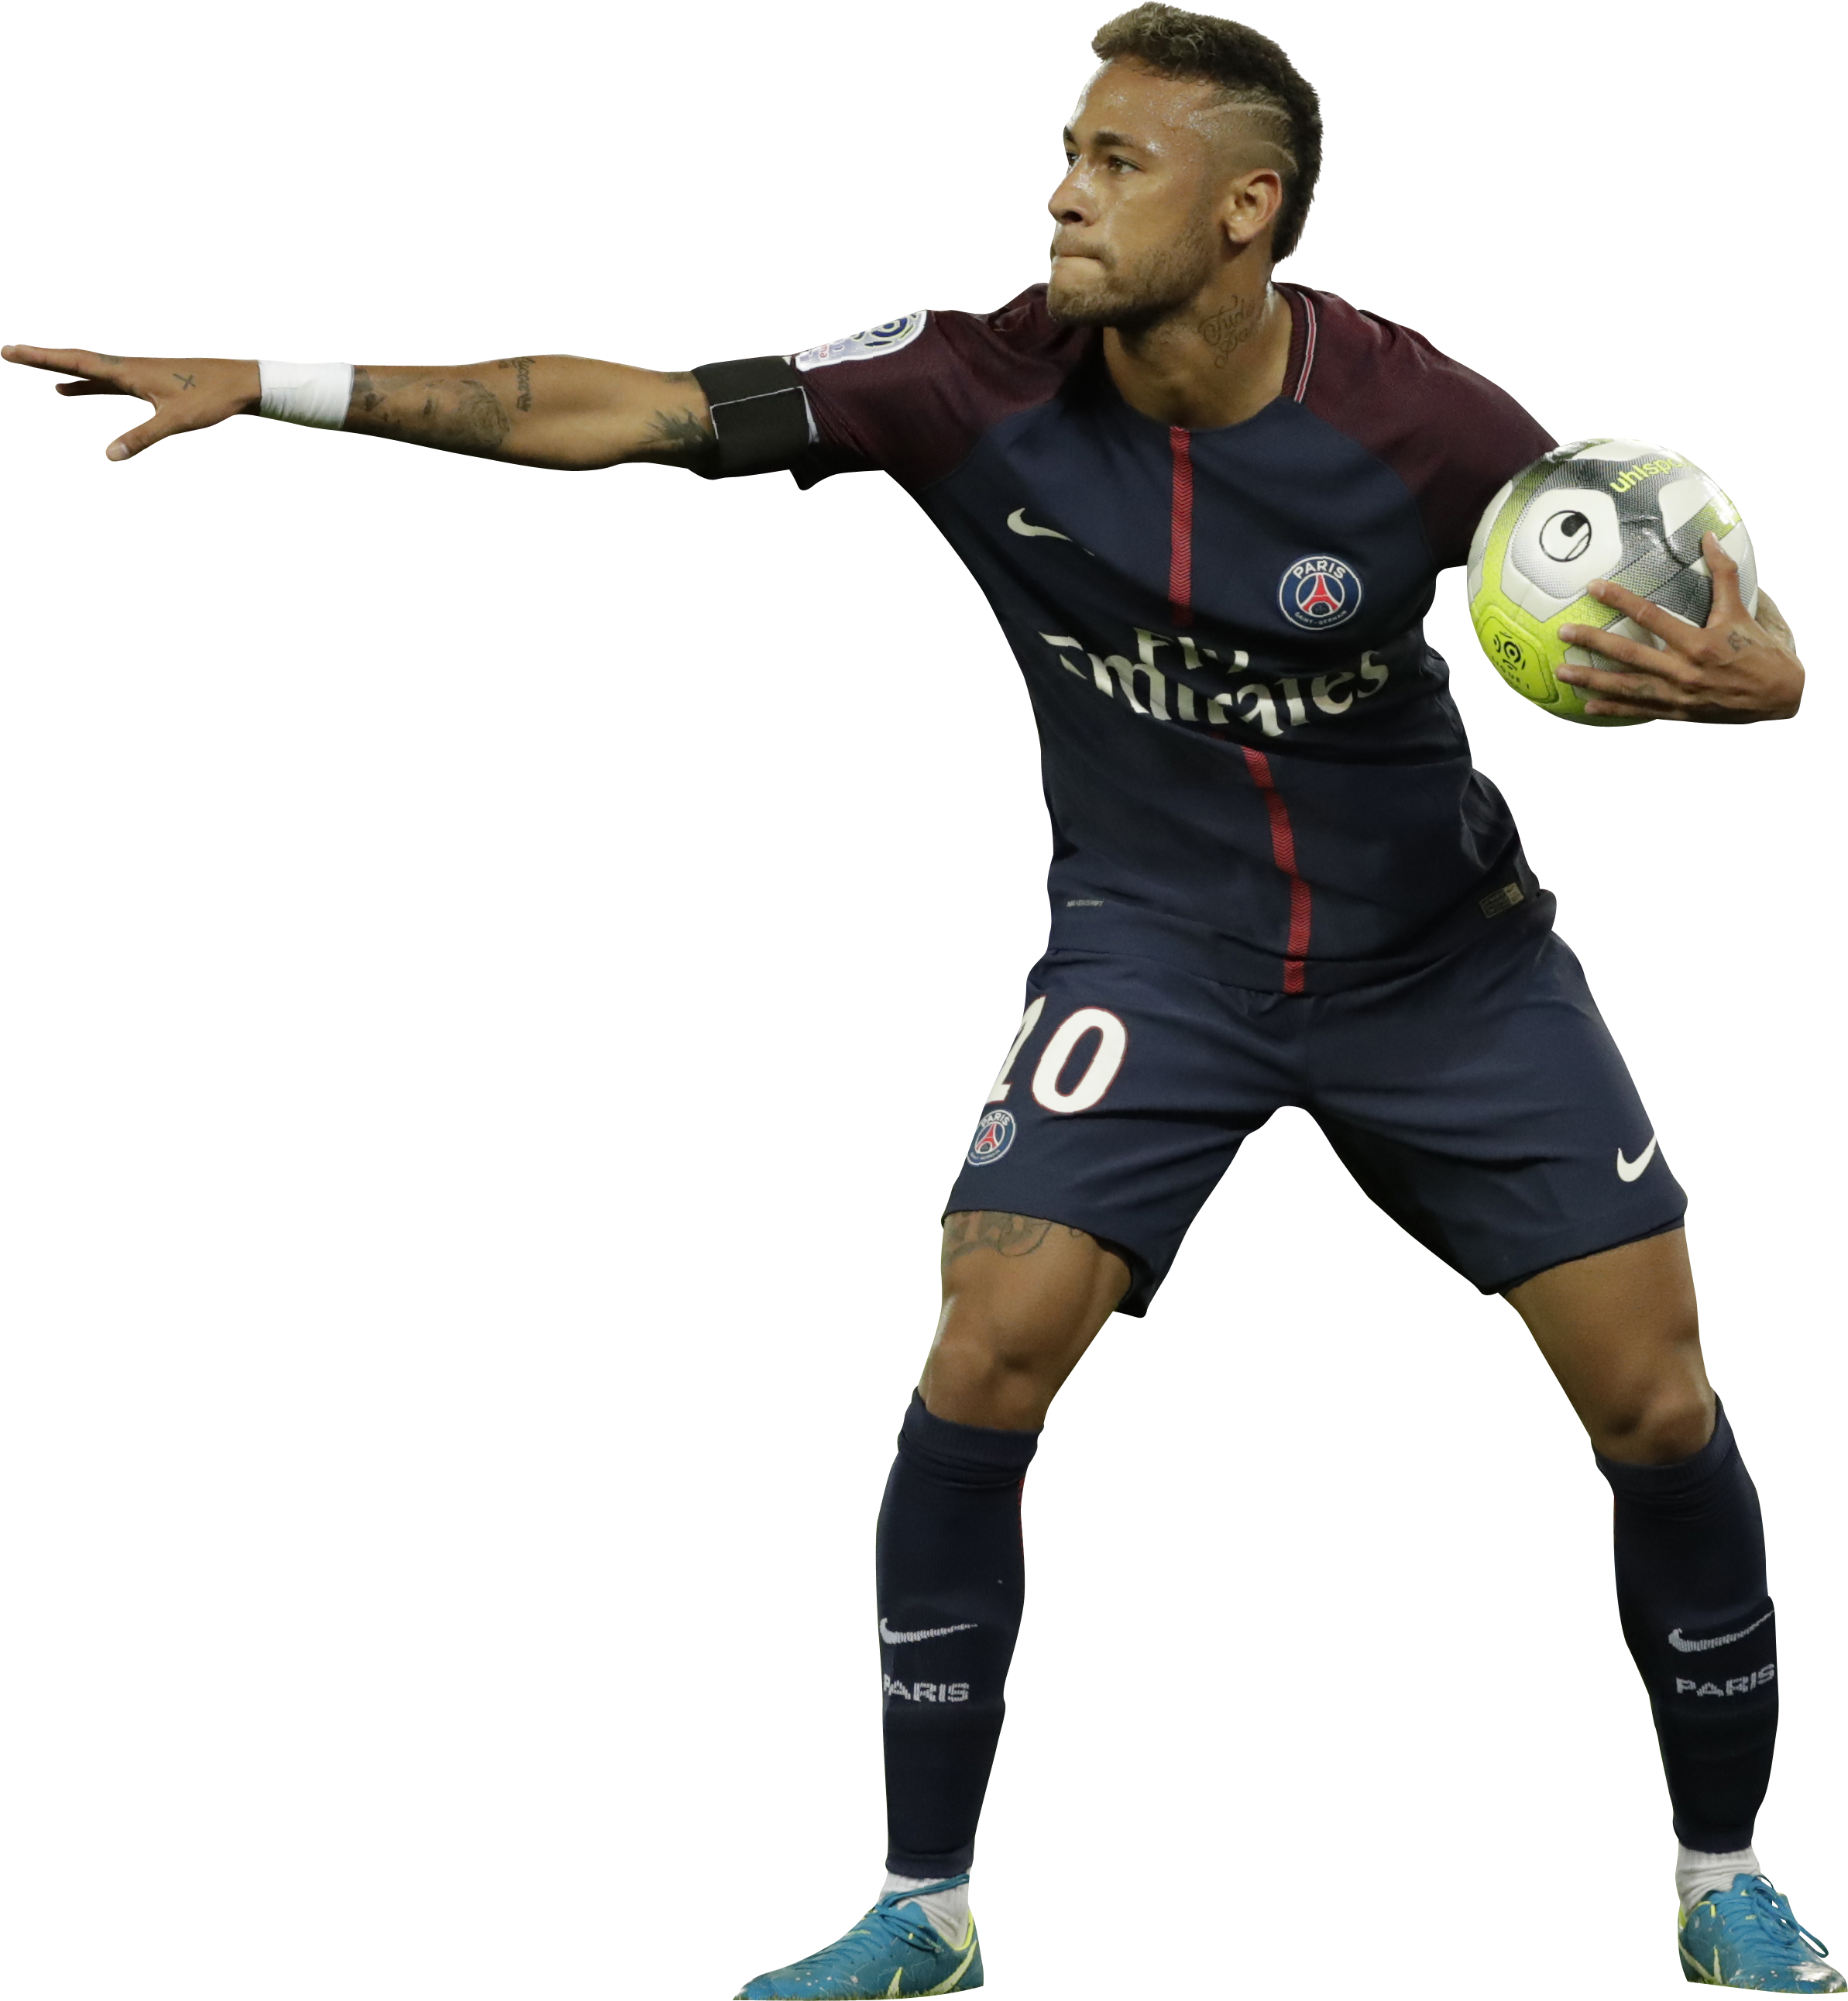 Neymar PSG 2017 With Ball Clipart Images Black and White.